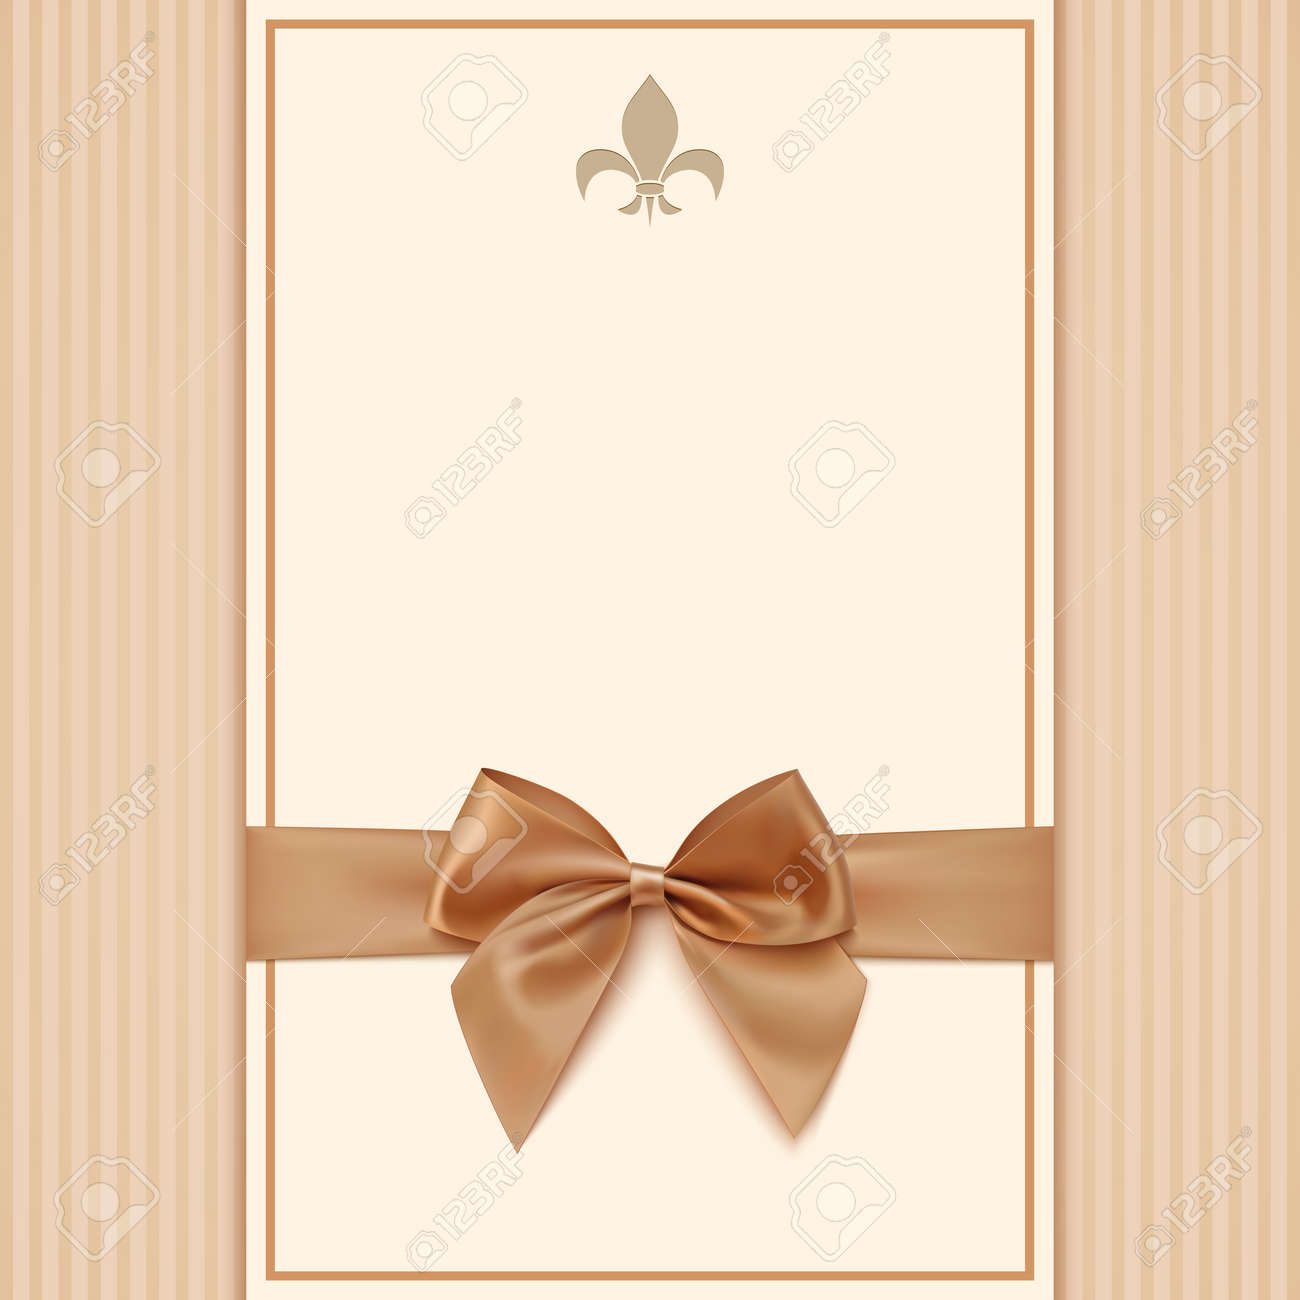 vintage greeting card template with golden bow and ribbon